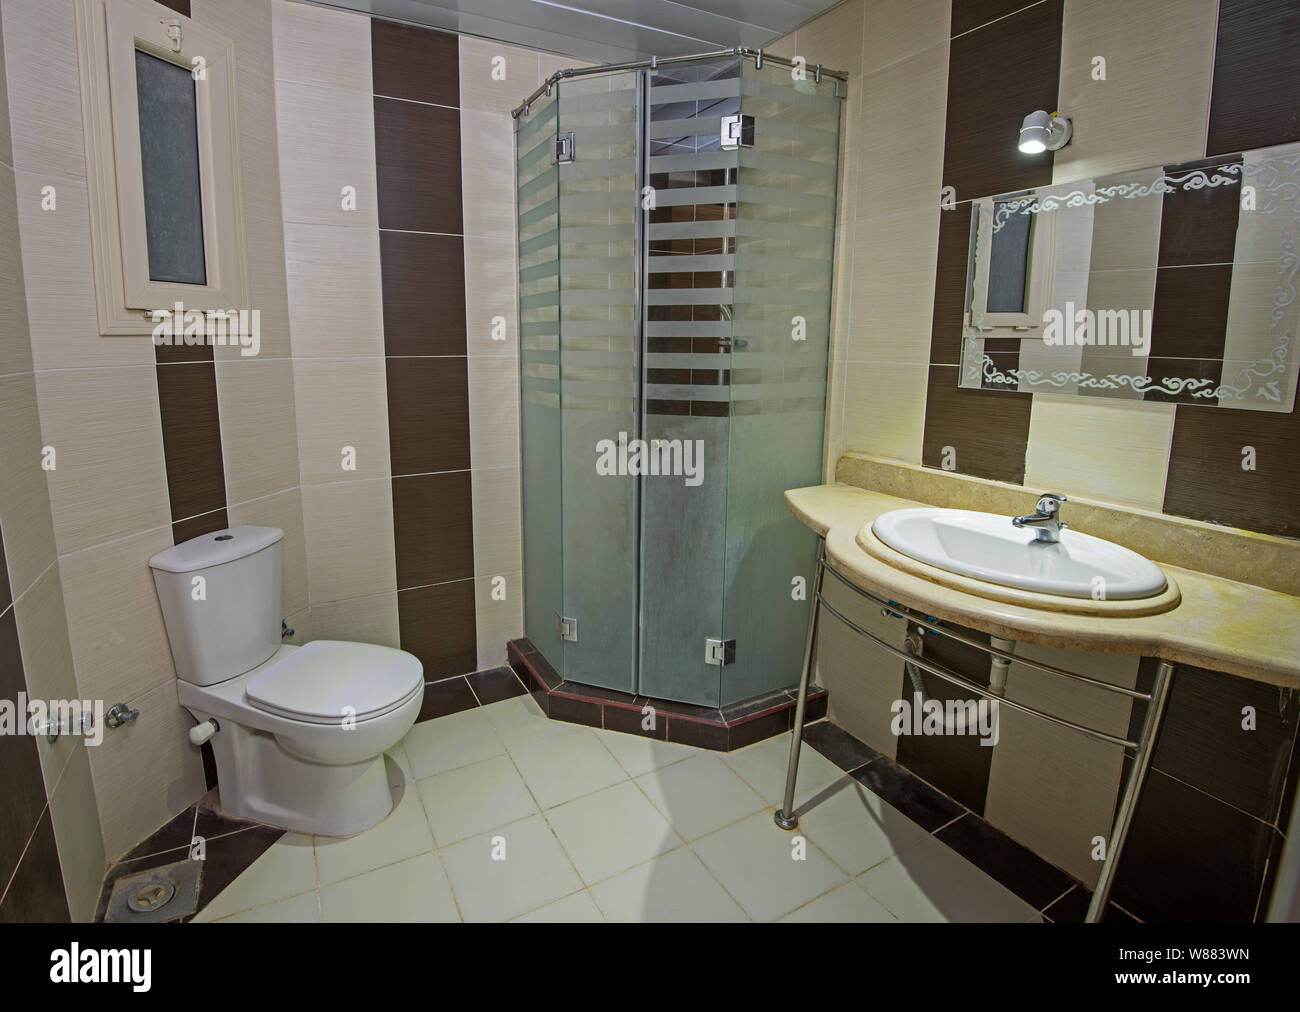 Interior Design Of A Luxury Show Home Bathroom With Shower Cubicle Stock Photo Alamy